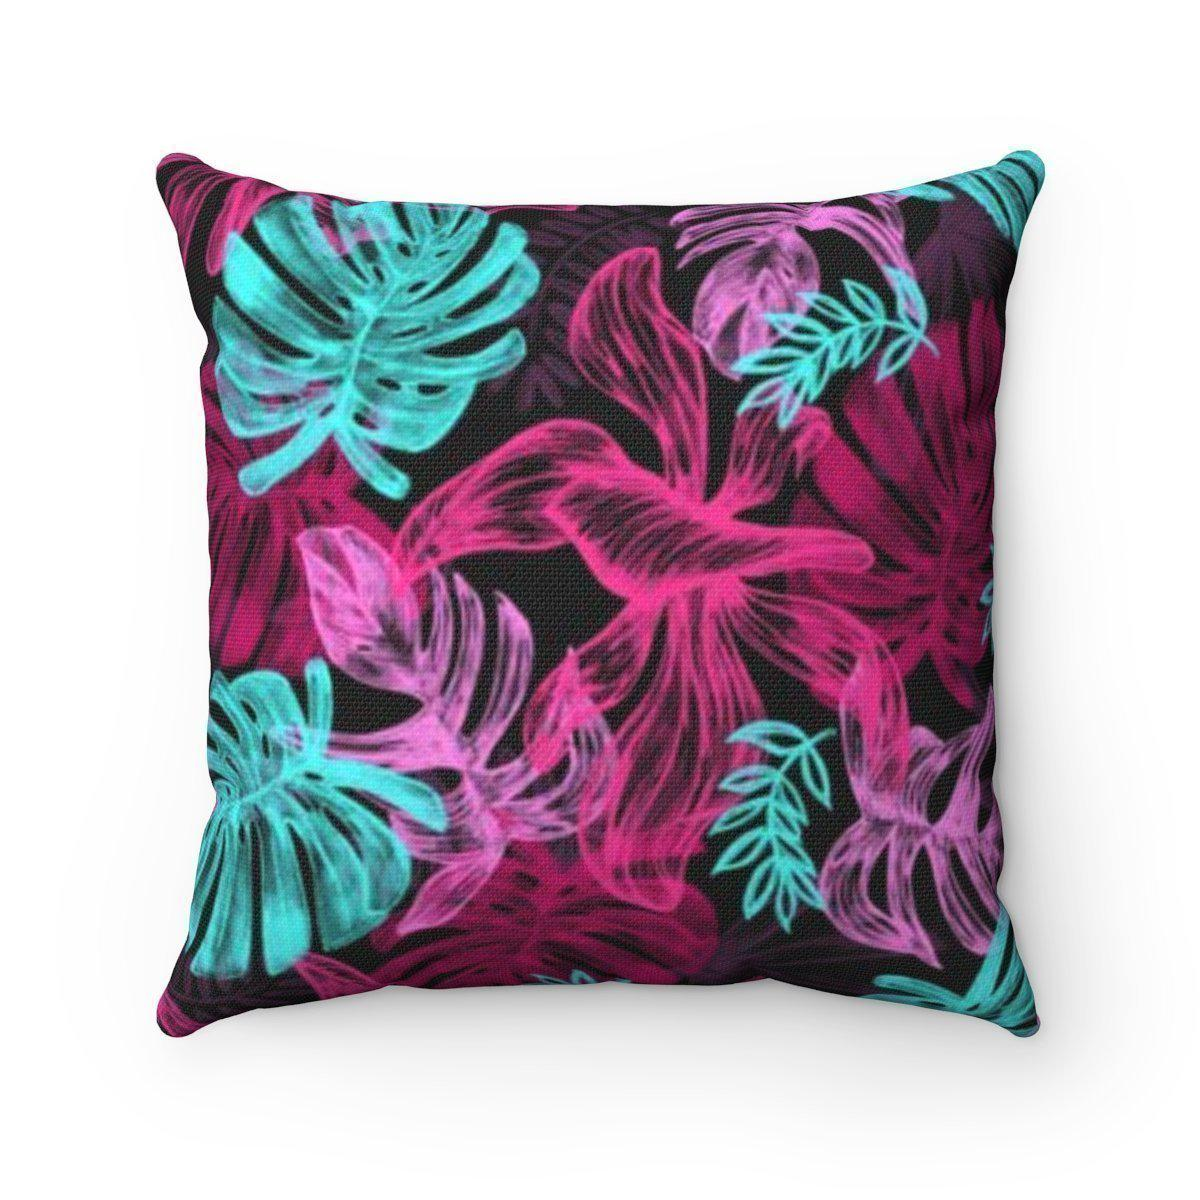 Modern tropical leaves decorative cushion cover-Home Decor - Decorative Accents - Pillows & Throws - Decorative Pillows-Maison d'Elite-Très Elite